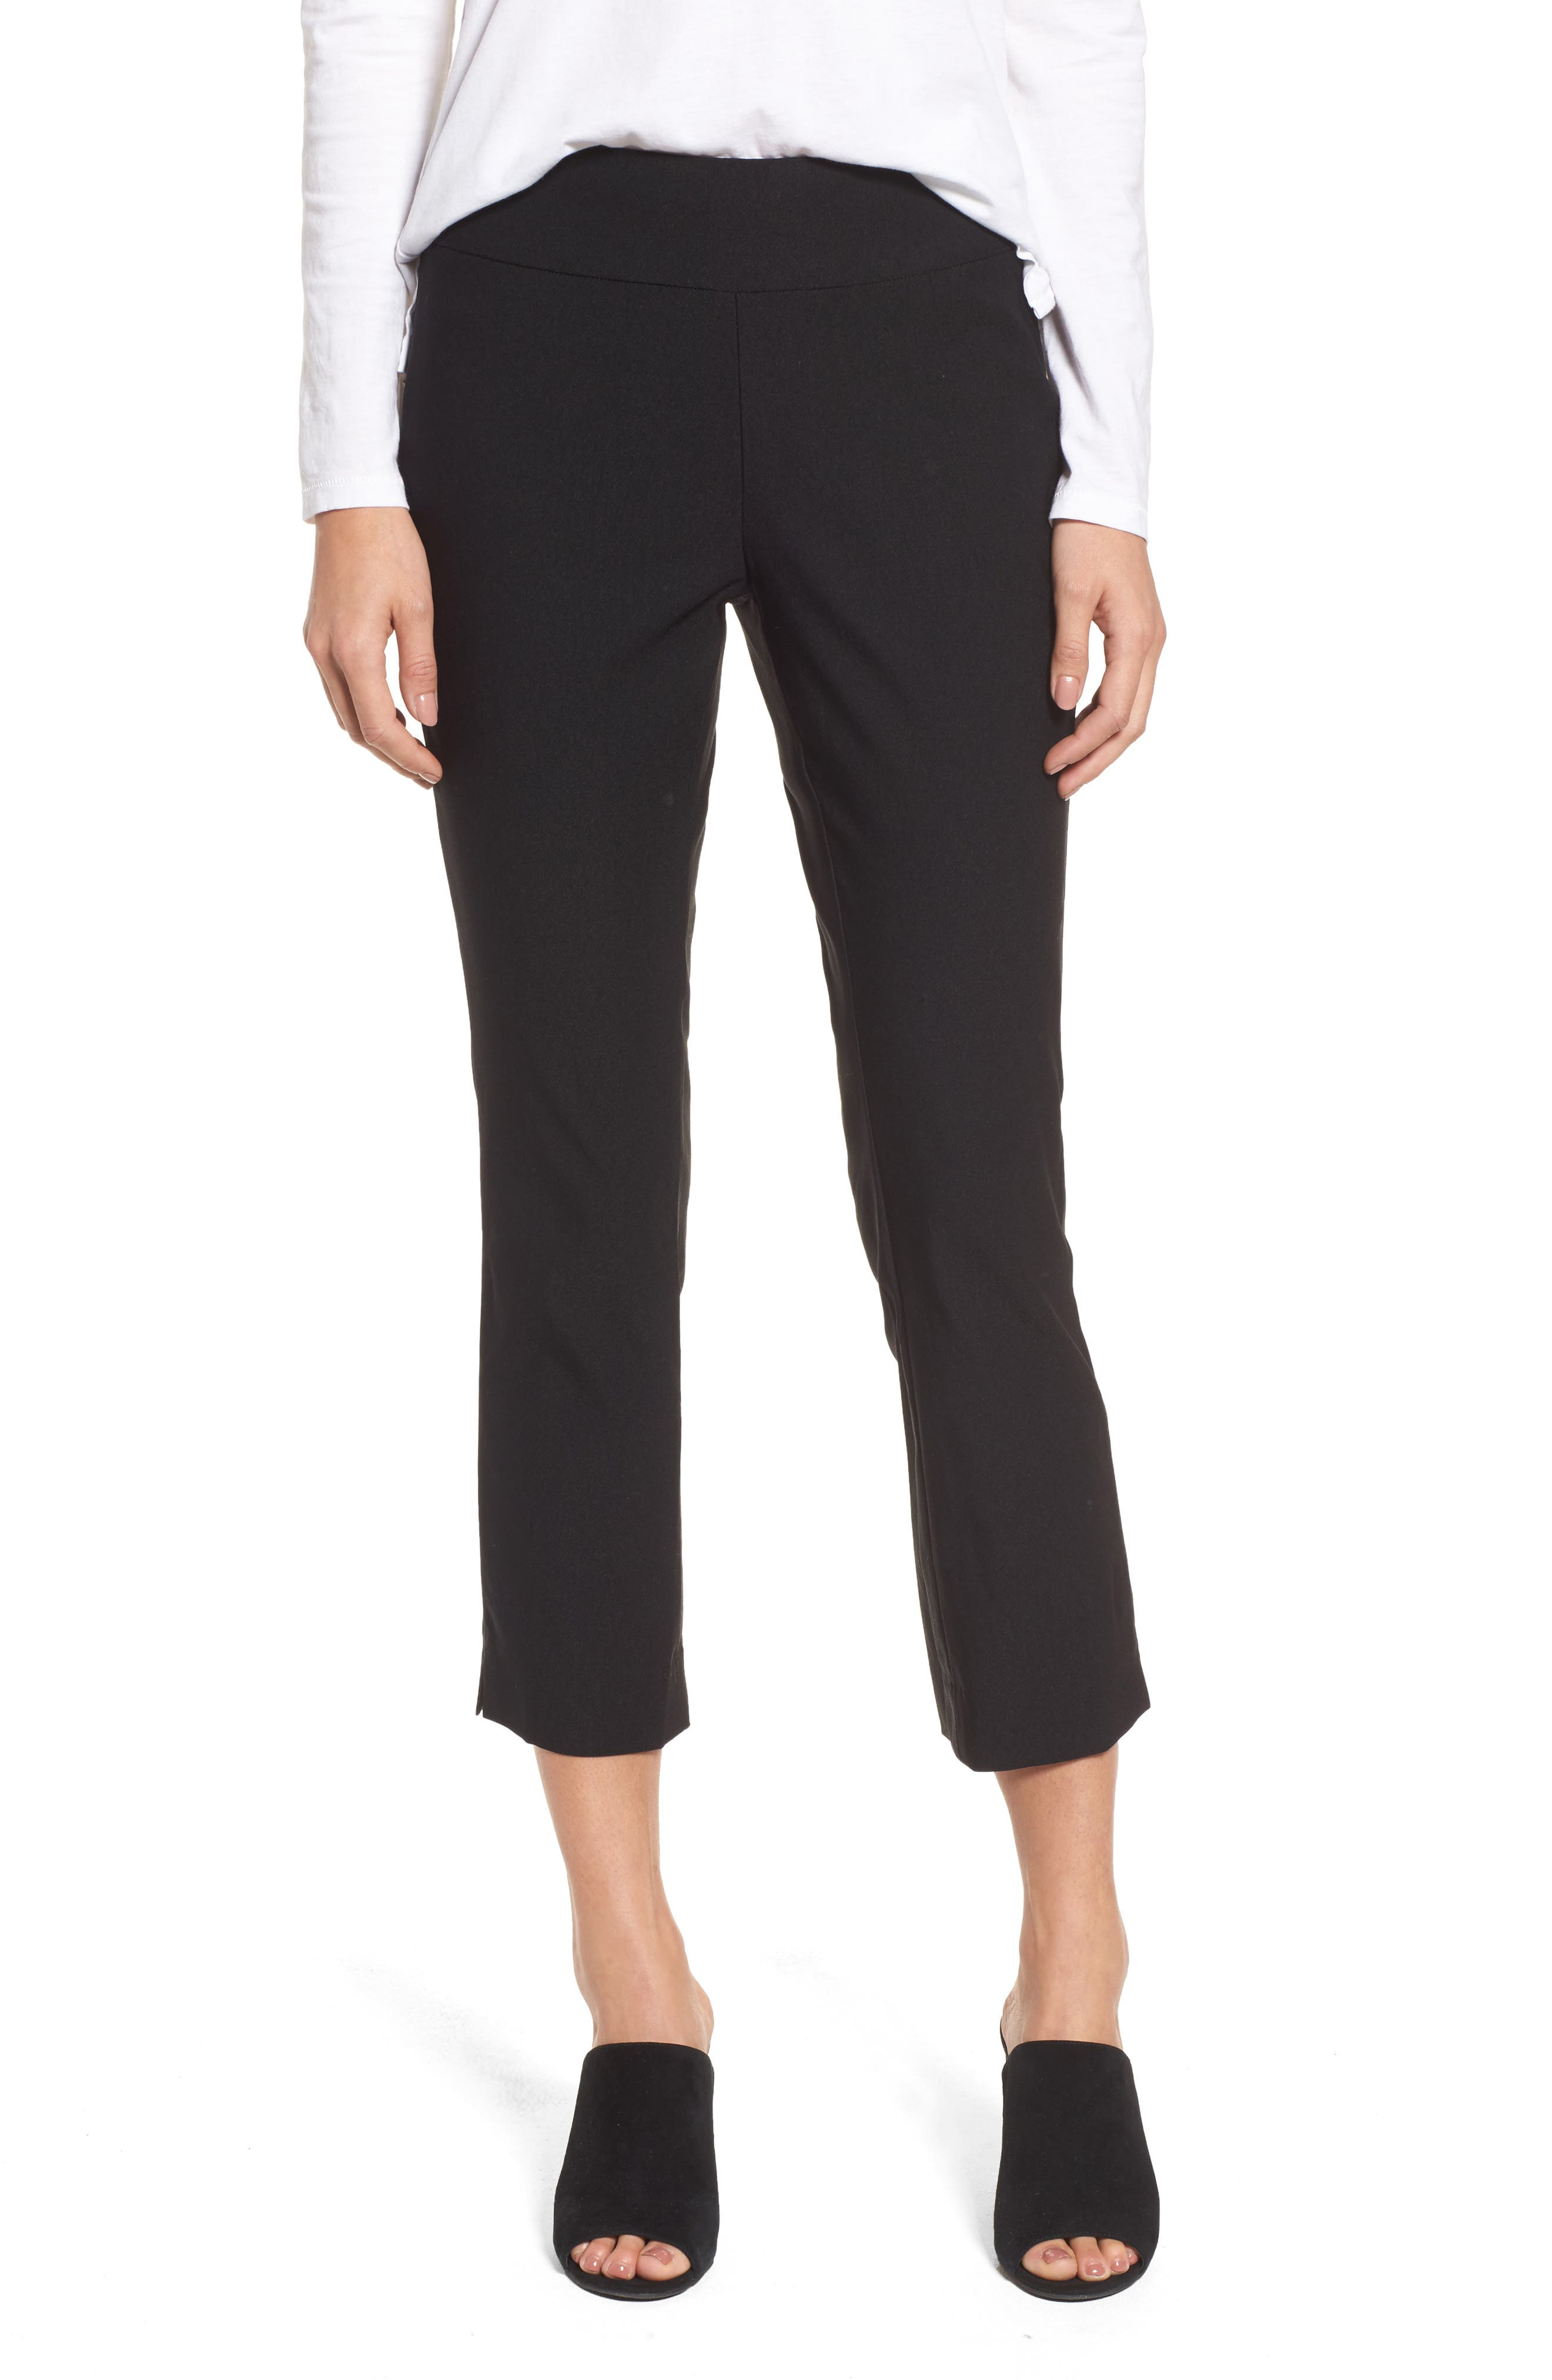 Wonder Stretch Crop Pants,                             Main thumbnail 1, color,                             Black Onyx